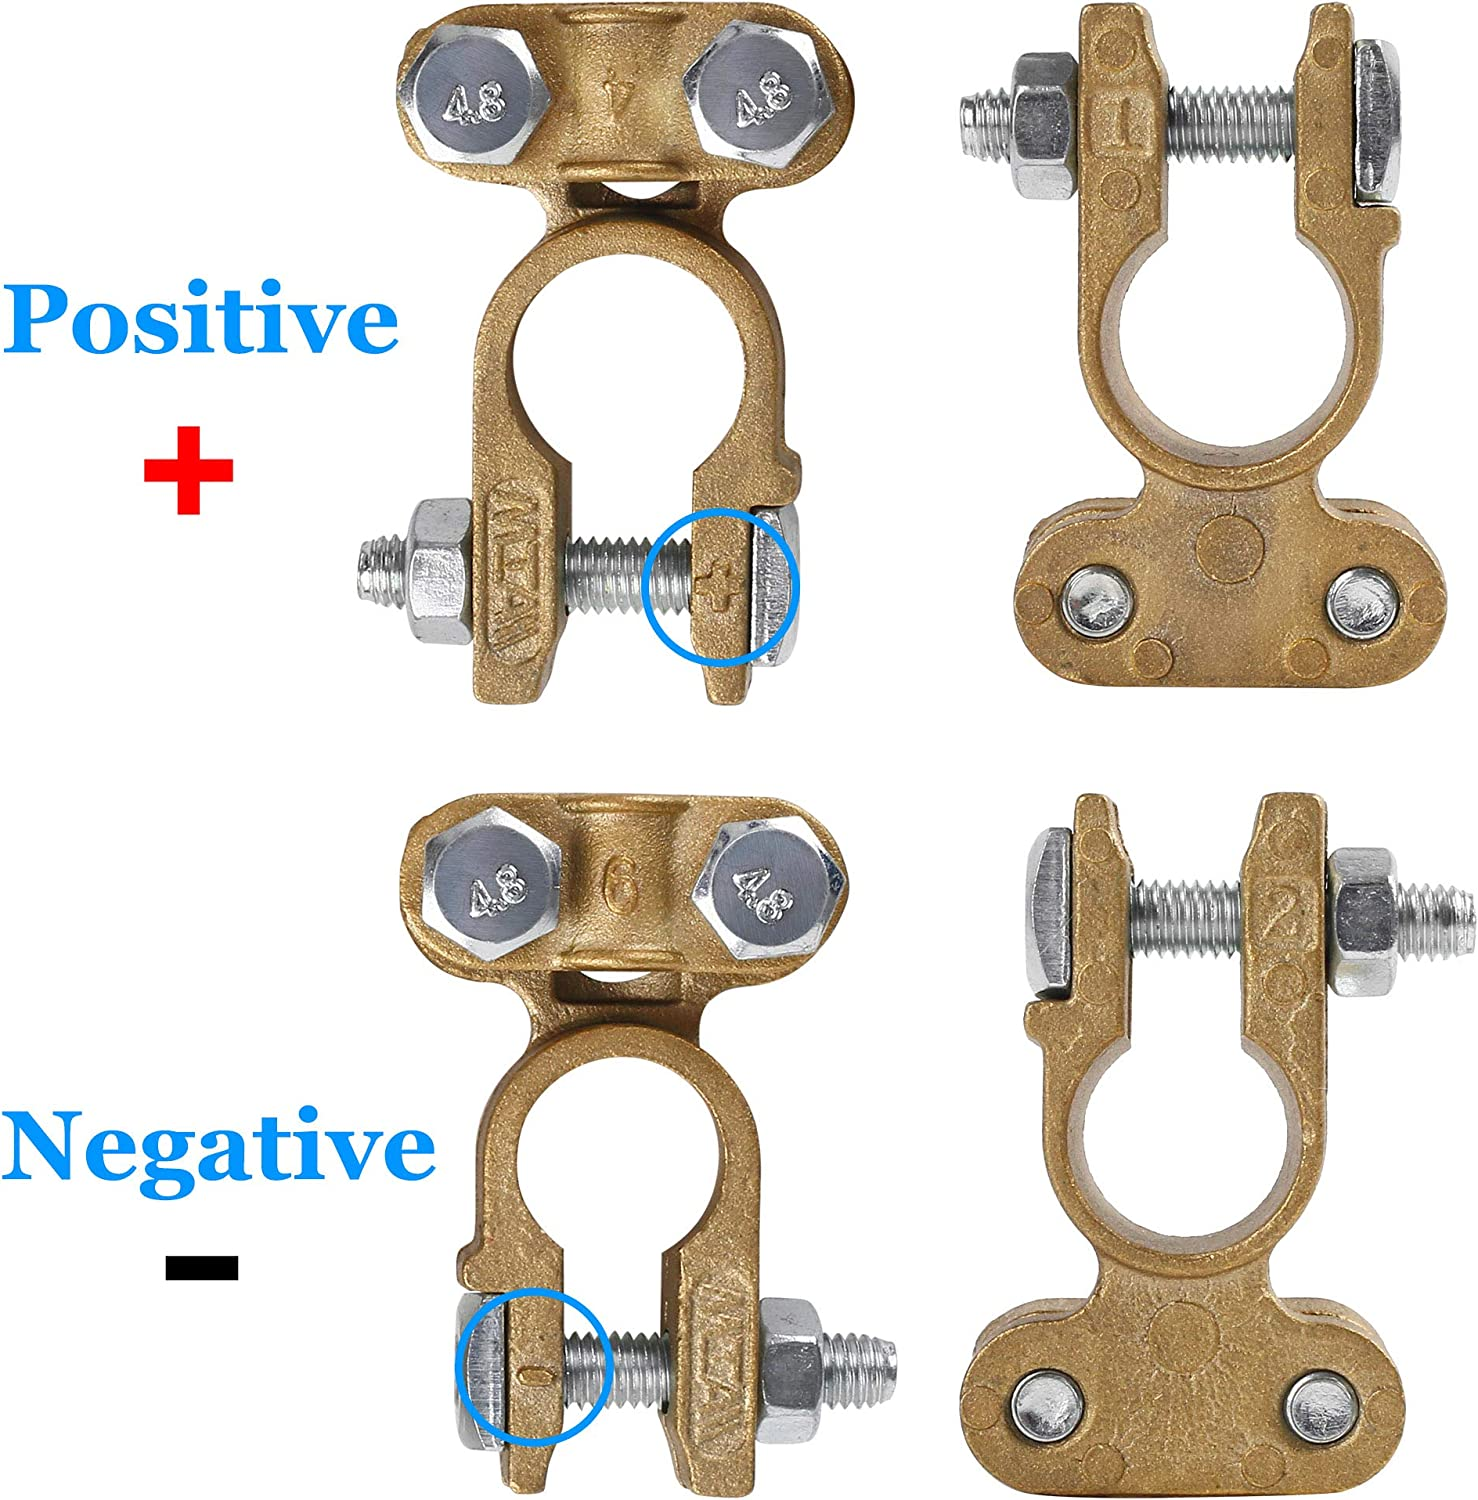 LotFancy Battery Terminal Connectors Clamps Set 1 Pair Positive /& Negative Brass Battery Terminal Adapter Top Post for Marine Ship Boat Camper Truck Car Vehicle